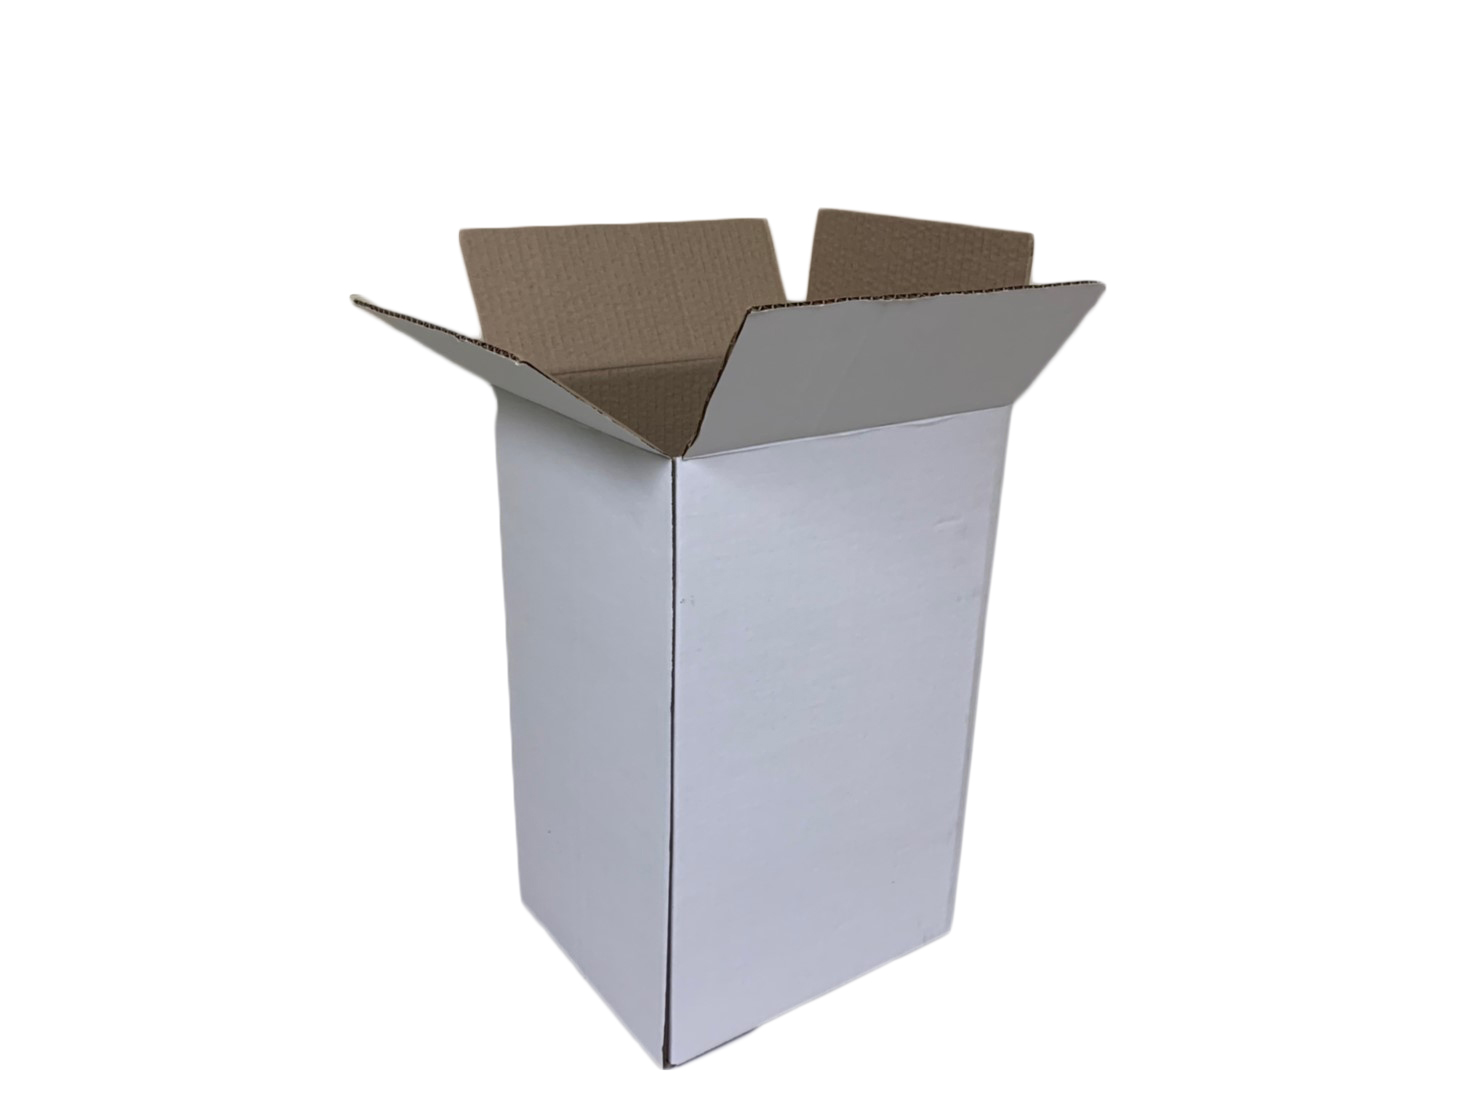 Standard box made from white paper